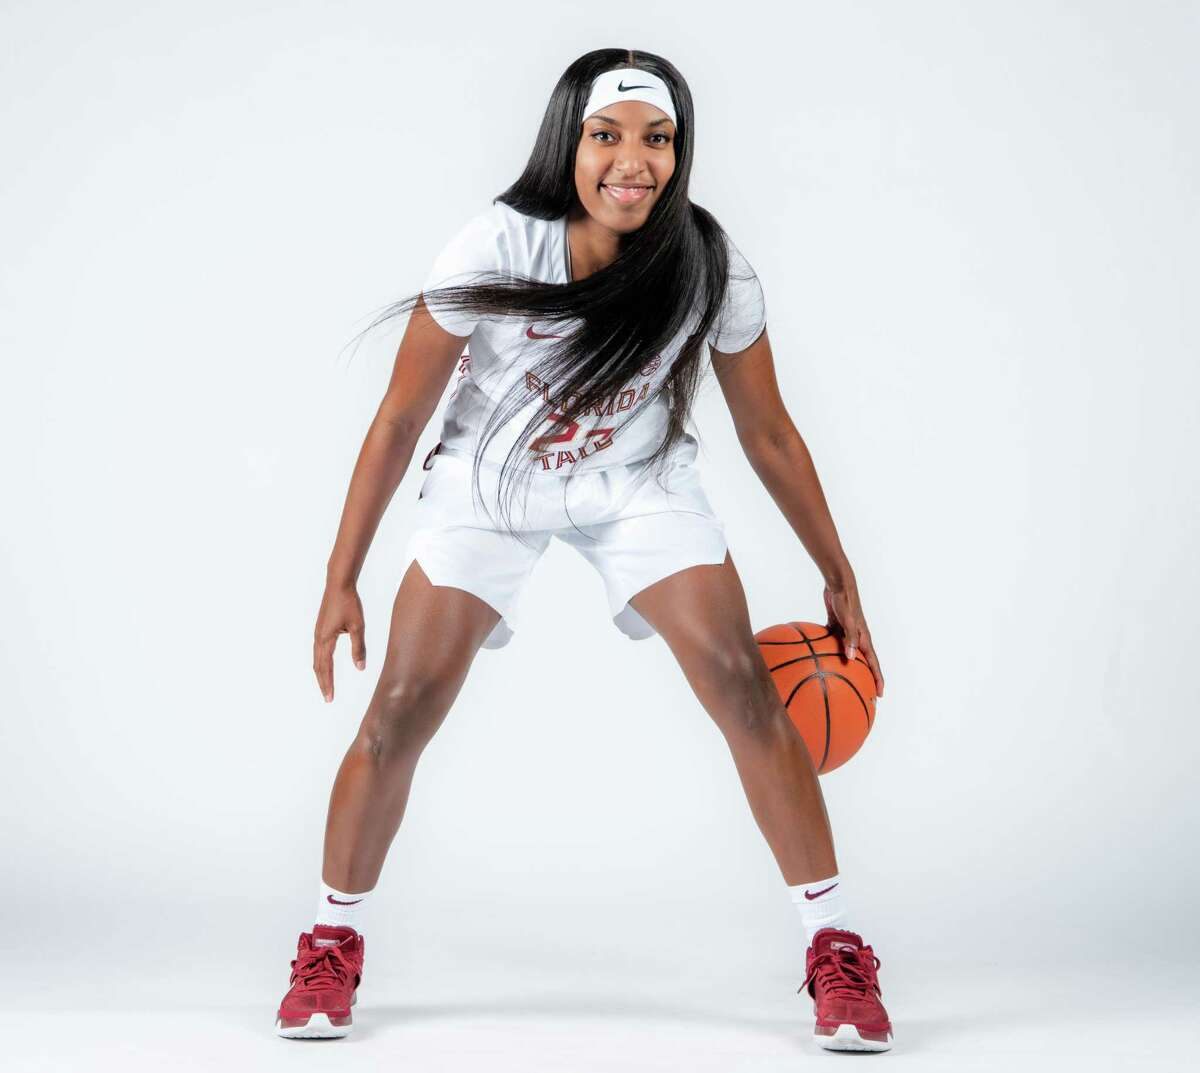 Florida State guard Tiana England, a Stamford native, is still waiting to play her first game for the Seminoles as she recovers from an unspecified medical issue.